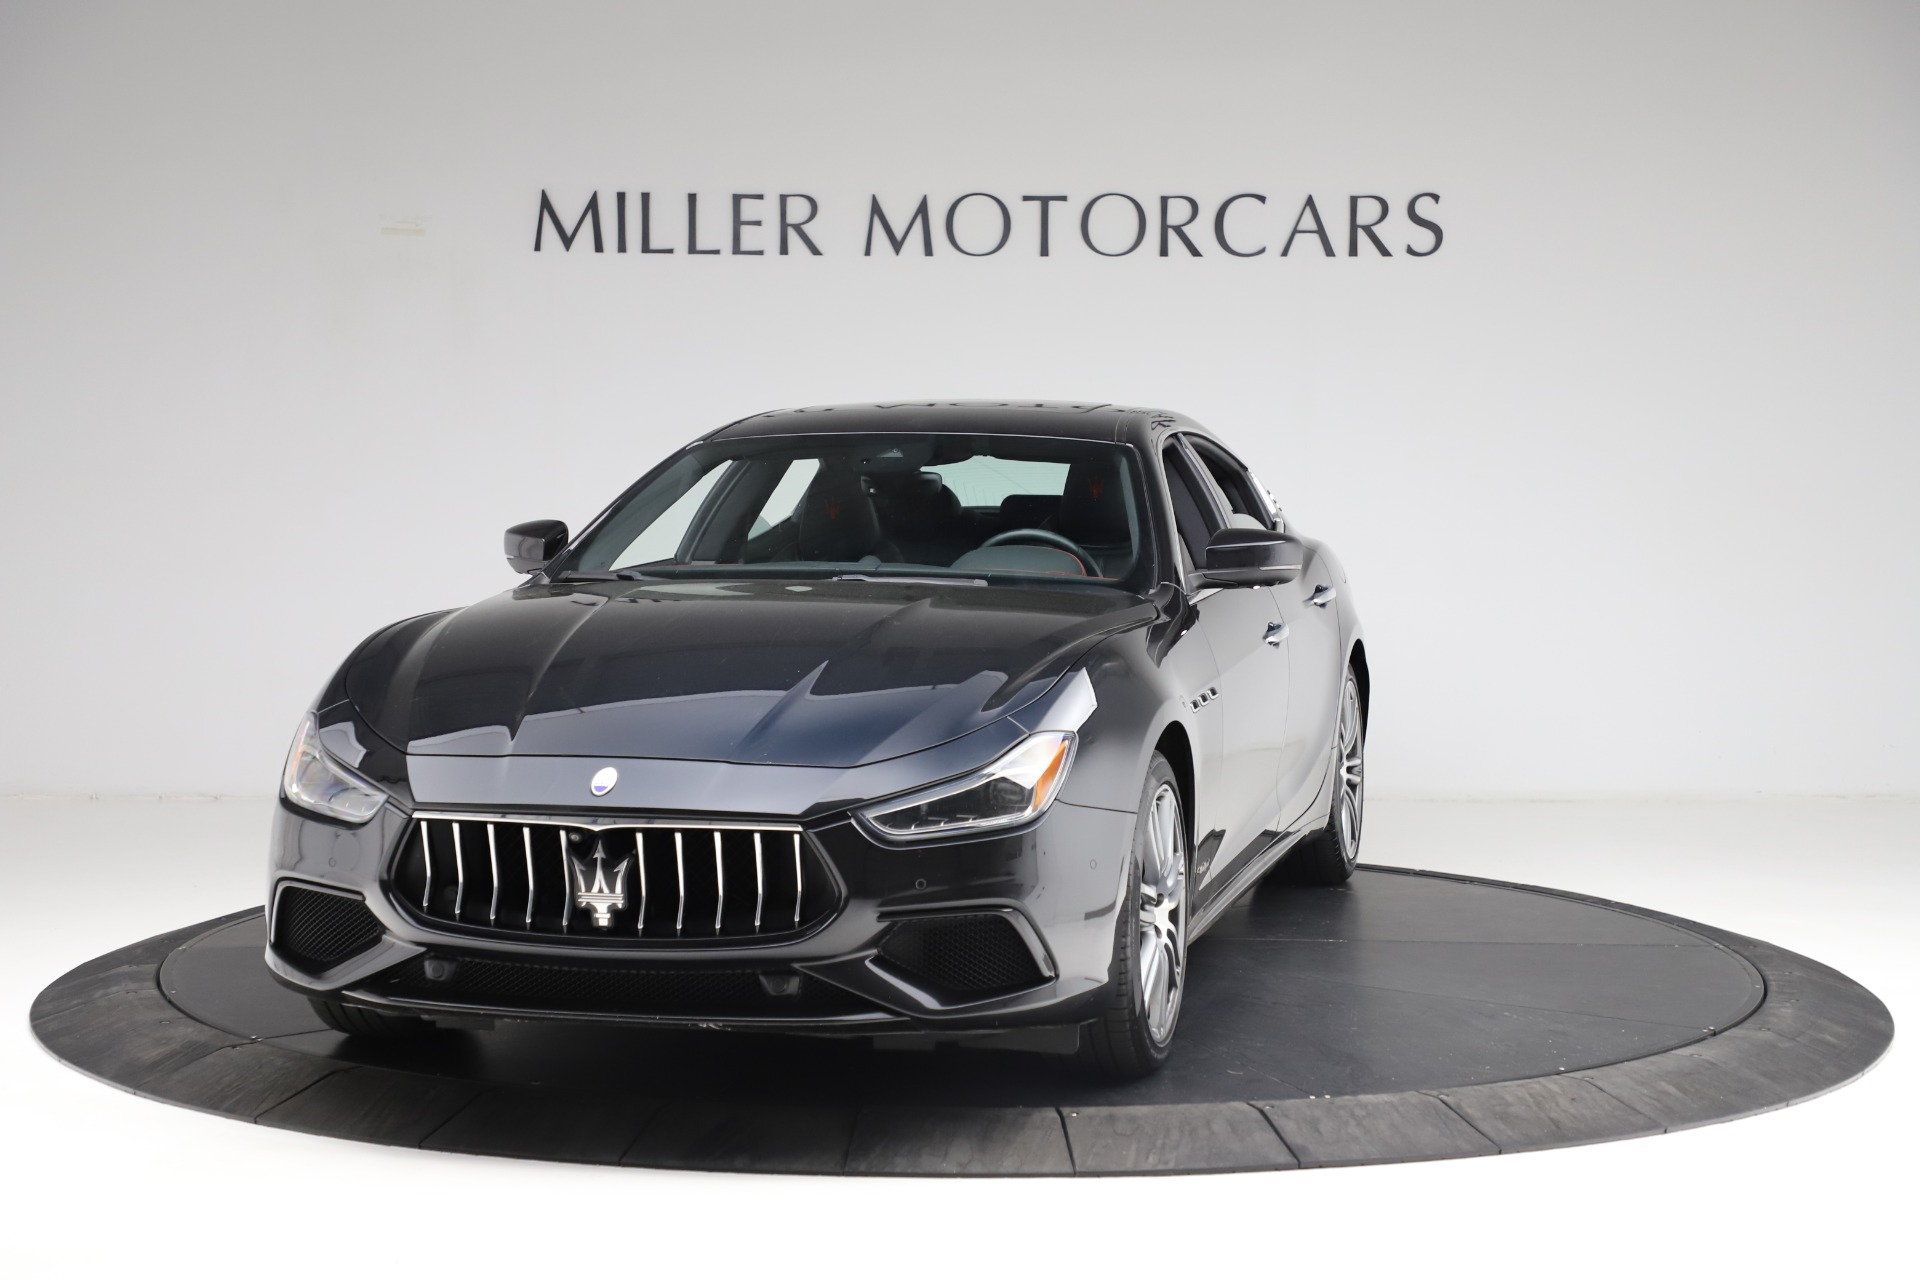 New 2018 Maserati Ghibli S Q4 Gransport for sale Sold at Bentley Greenwich in Greenwich CT 06830 1